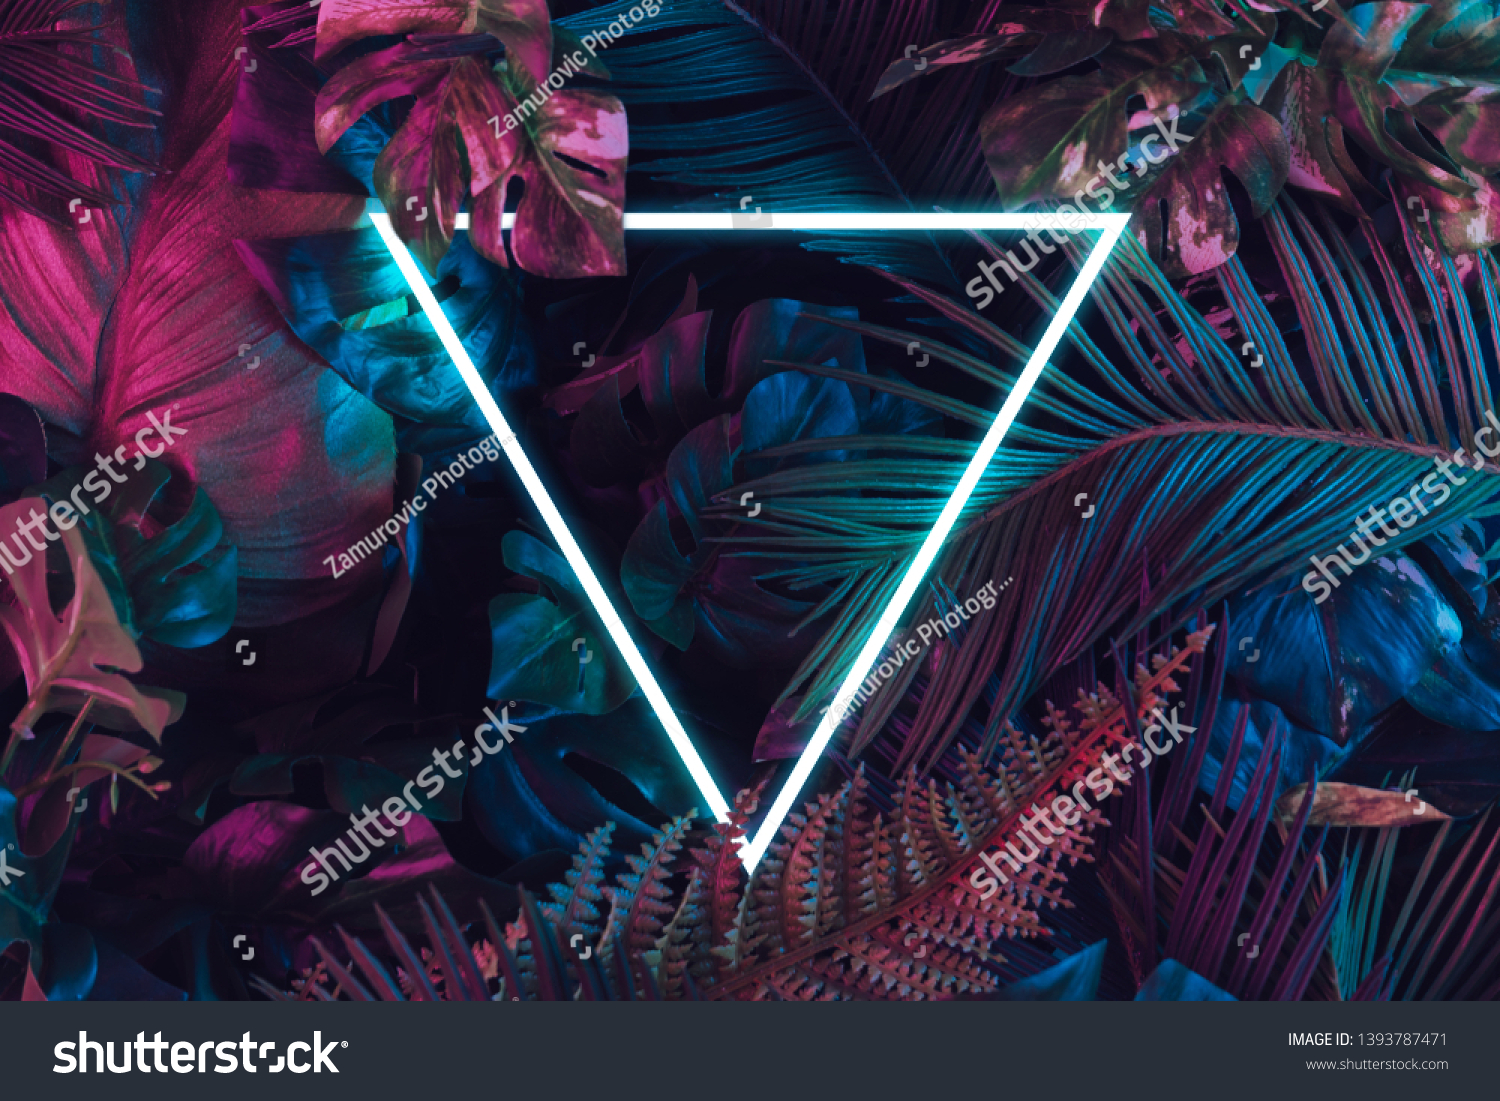 Creative fluorescent color layout made of tropical leaves. Flat lay neon colors. Nature concept. #1393787471